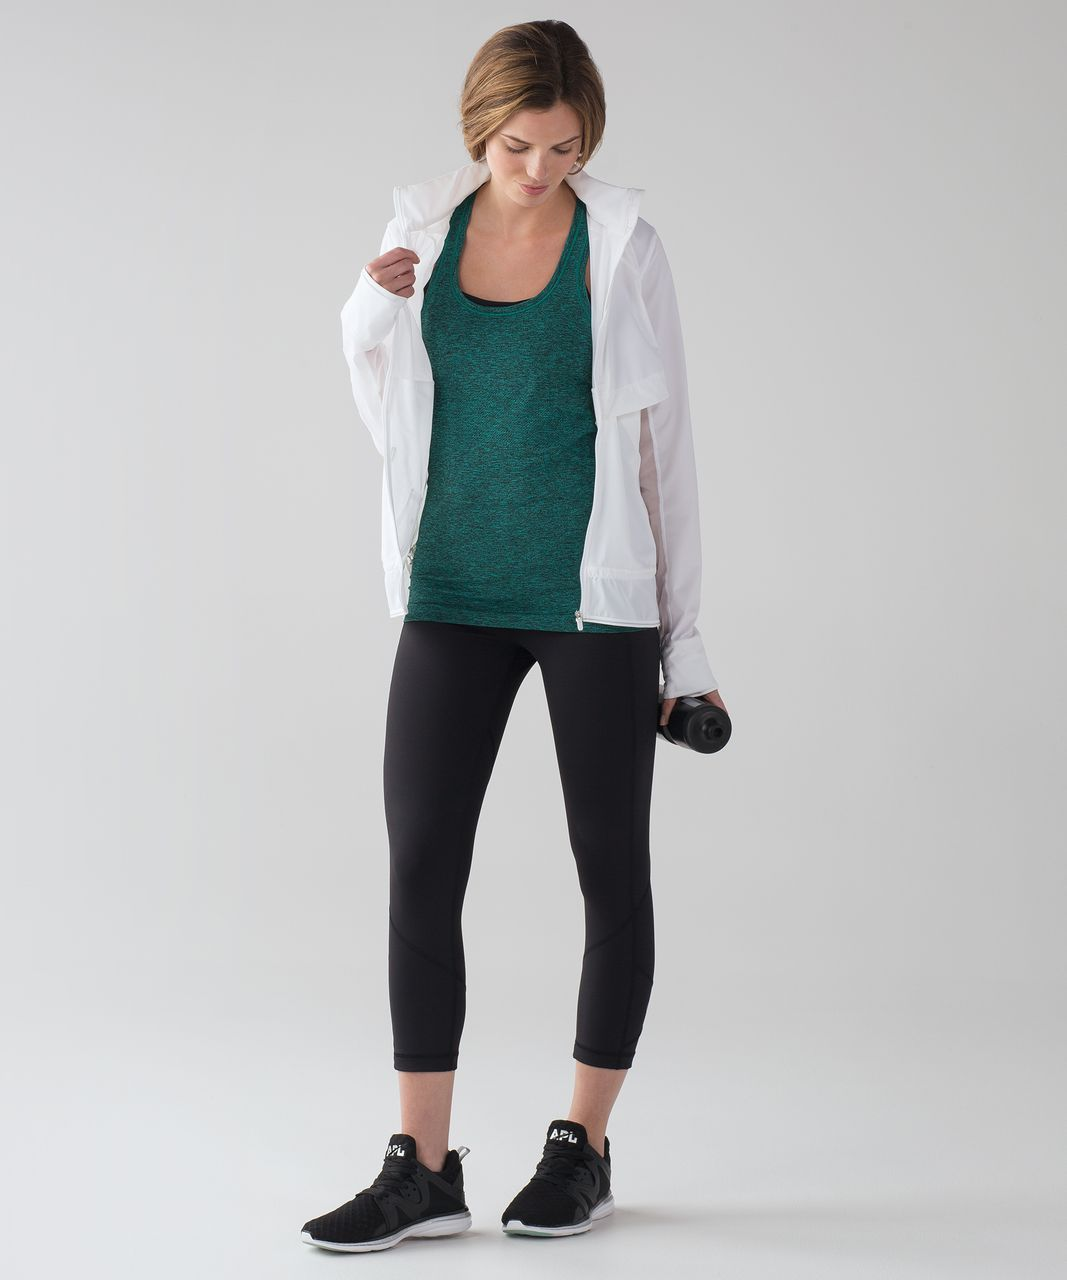 Lululemon Swiftly Tech Racerback - Viridian Green / Black